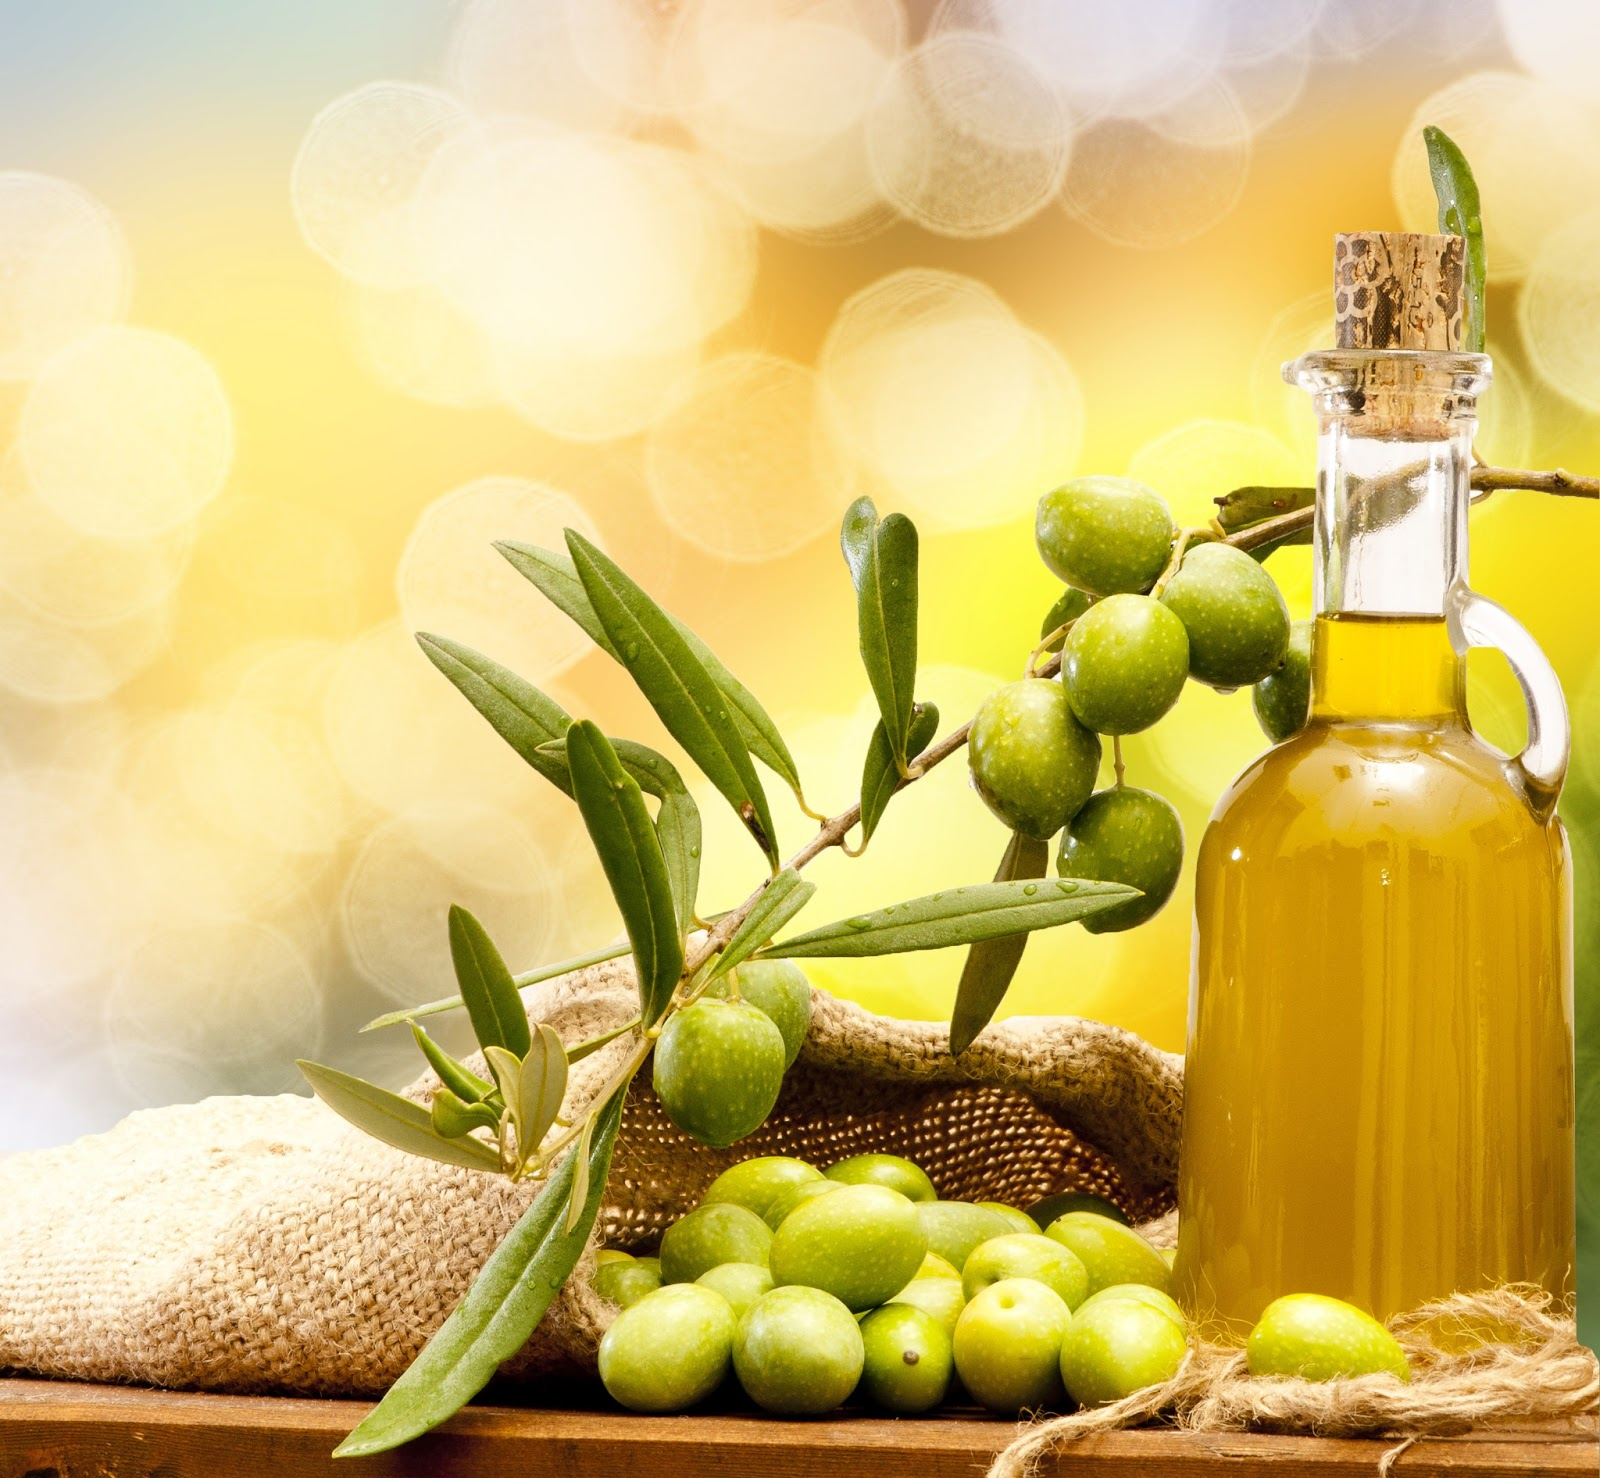 Green olives with a bottle of olive oil on a yellow background